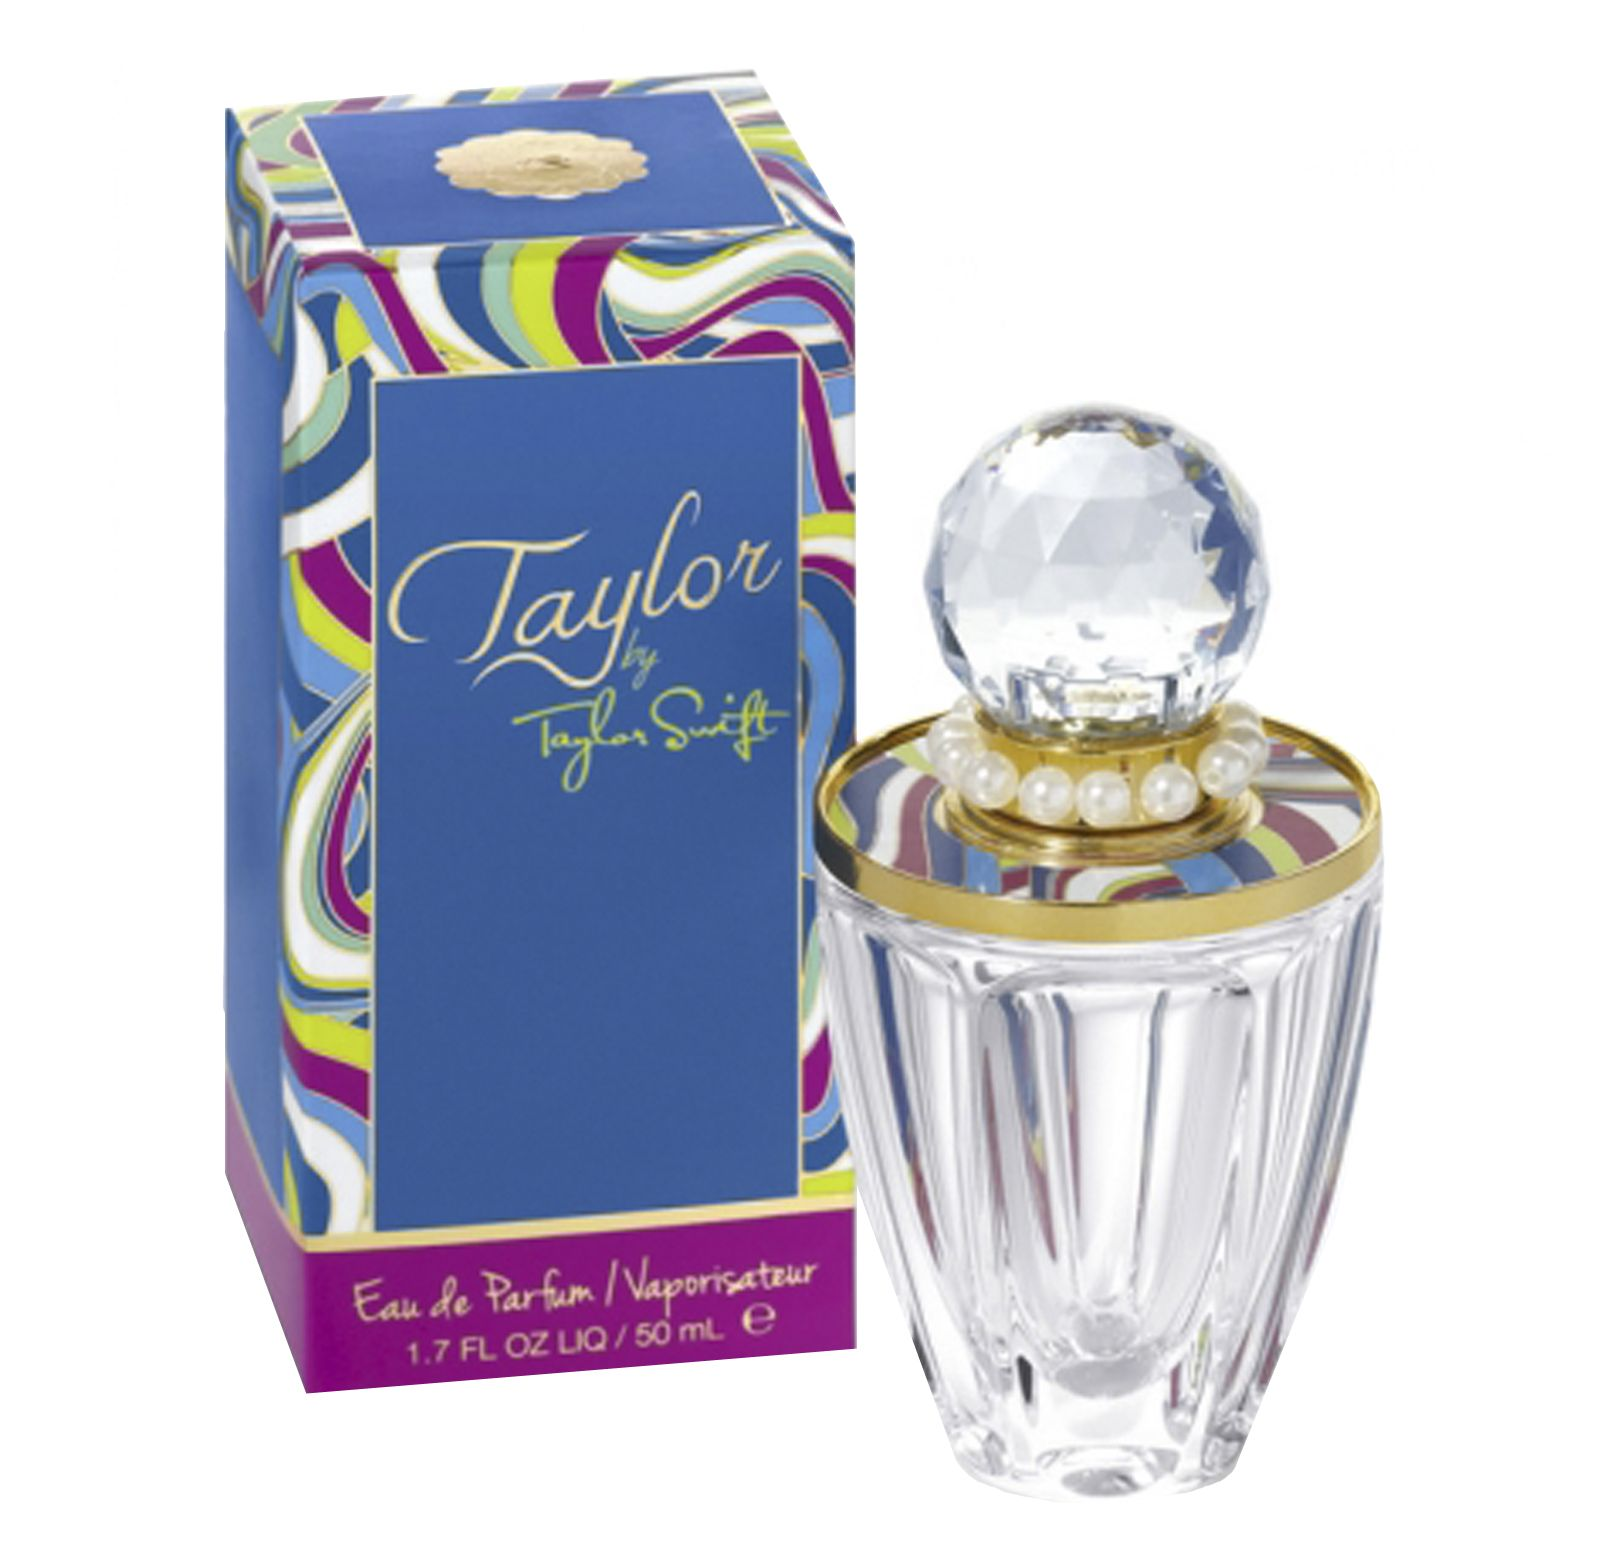 situation analysis on taylor swift's wonderstruck Situation analysis on taylor swift's wonderstruck fragrance table of contents 10 situation analysis/current marketing mix 11 current product 3 12 current pricing 4 13 current distribution 5 14 current promotion 6.